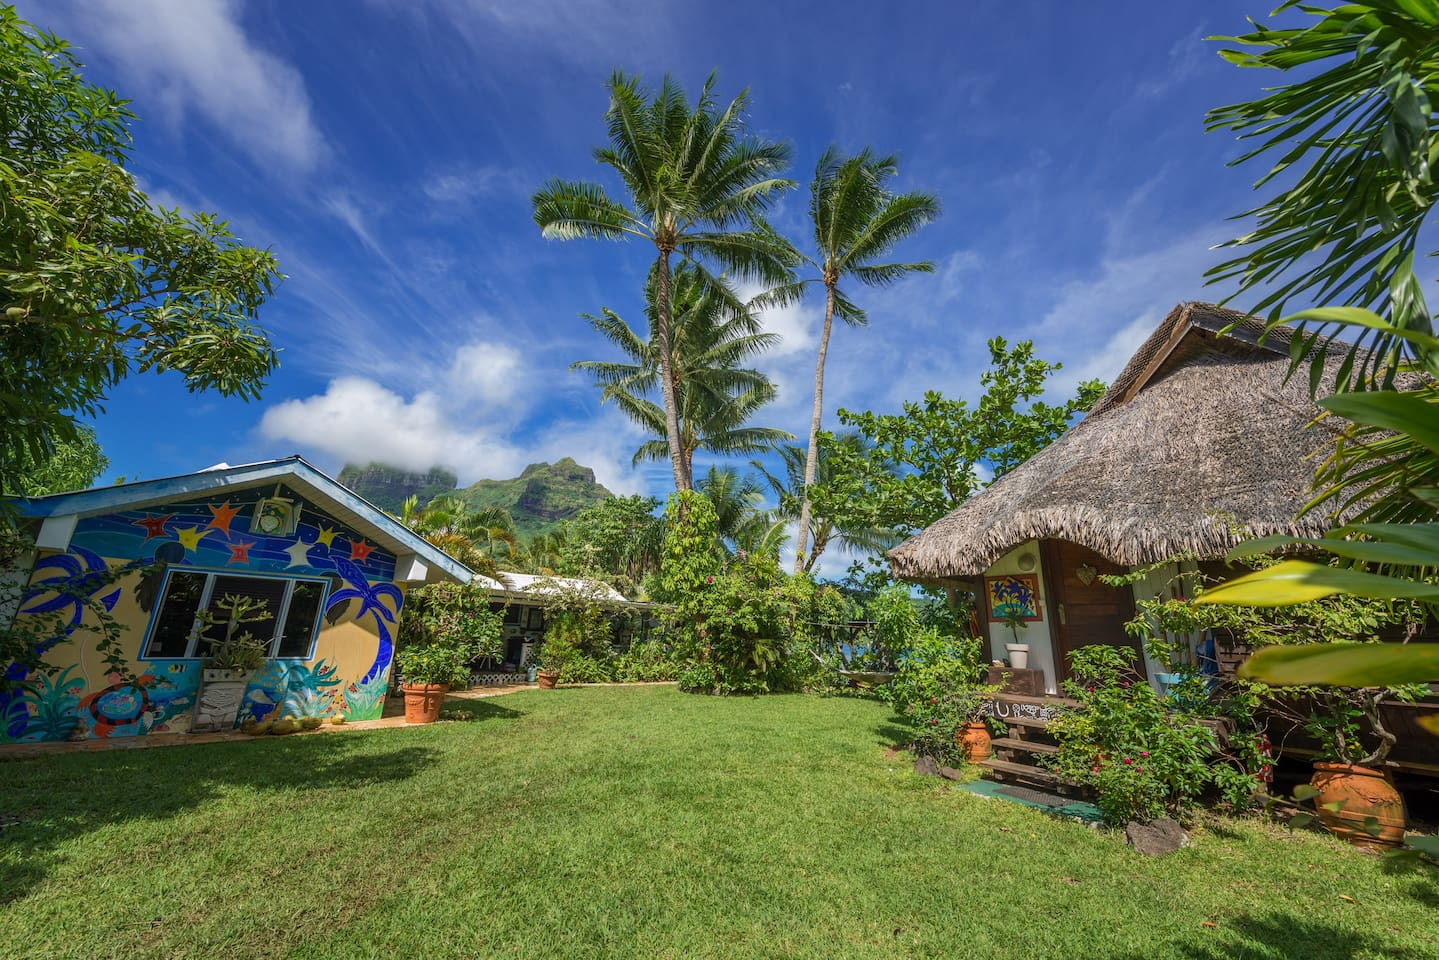 If you're heading to Bora Bora, check out this Airbnb.